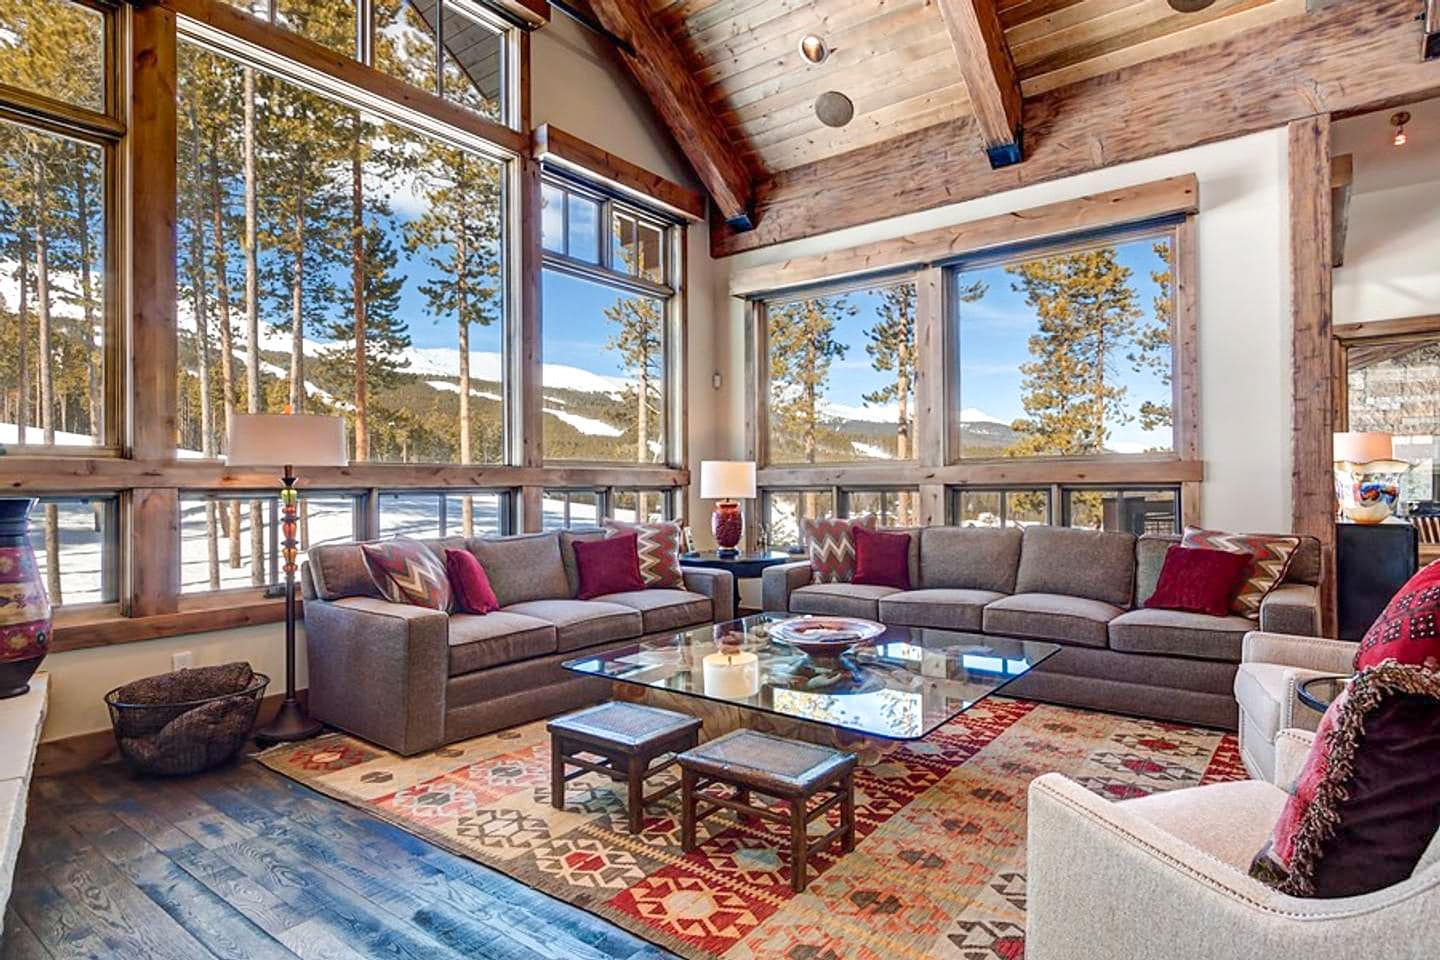 Gather next to the roaring fireplace and watch the skiers/bikers on the Trygve's Run.